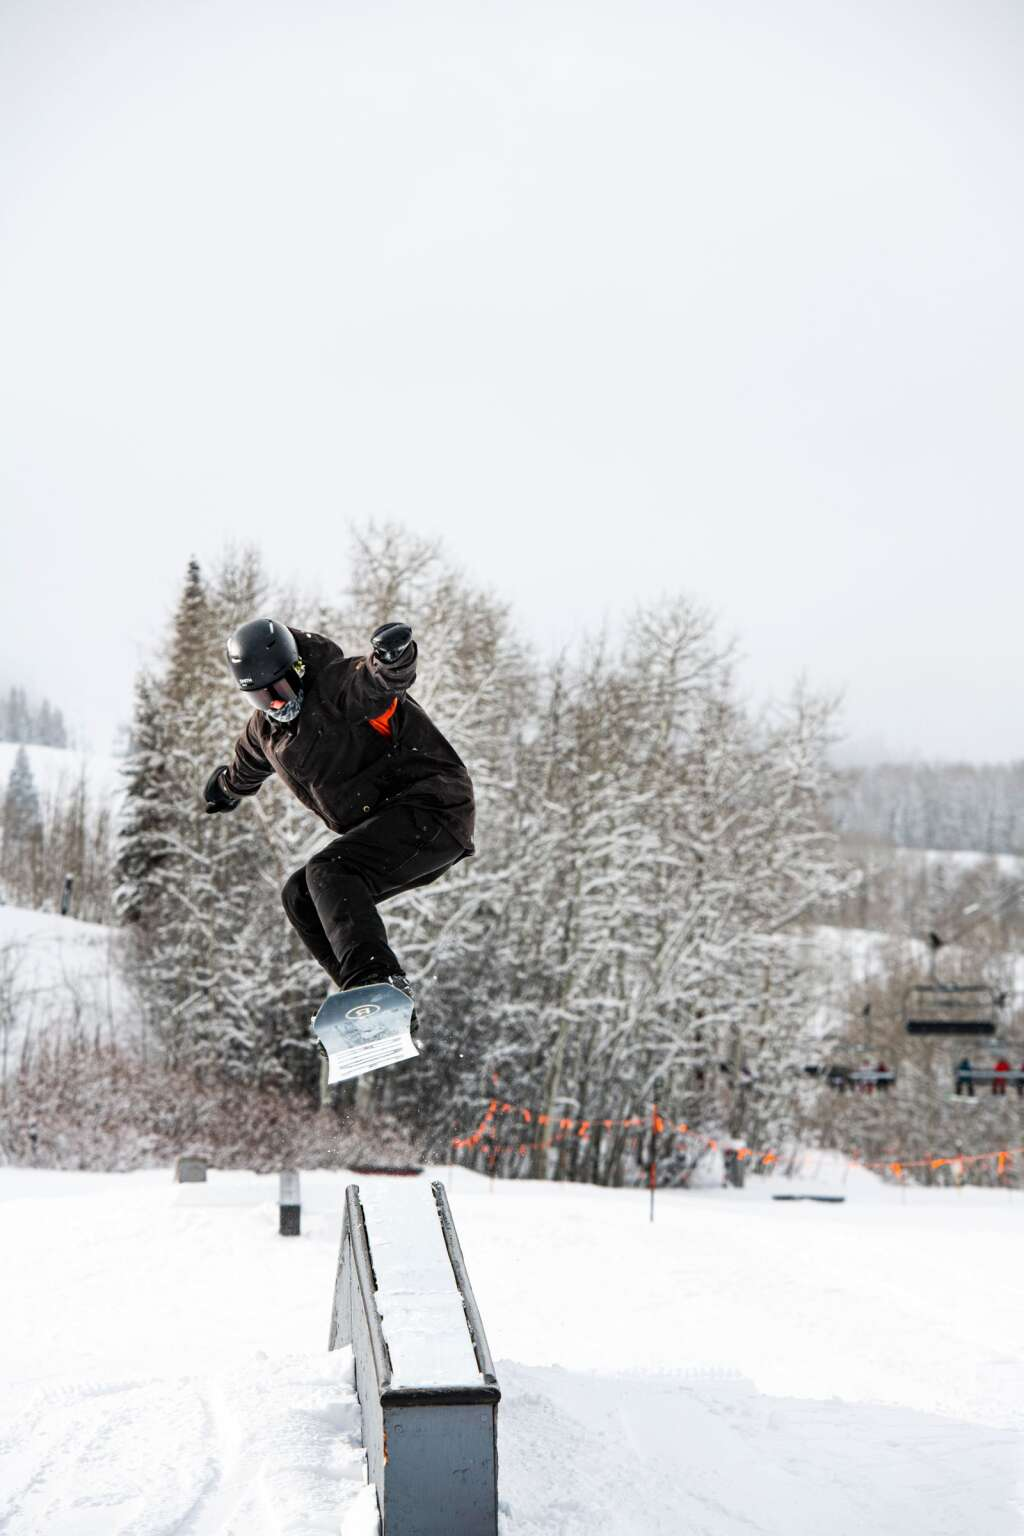 A snowboarder hits a rail at the top of Fanny Hill at Snowmass on a powder day on Tuesday, Dec. 29, 2020. (Kelsey Brunner/The Aspen Times)